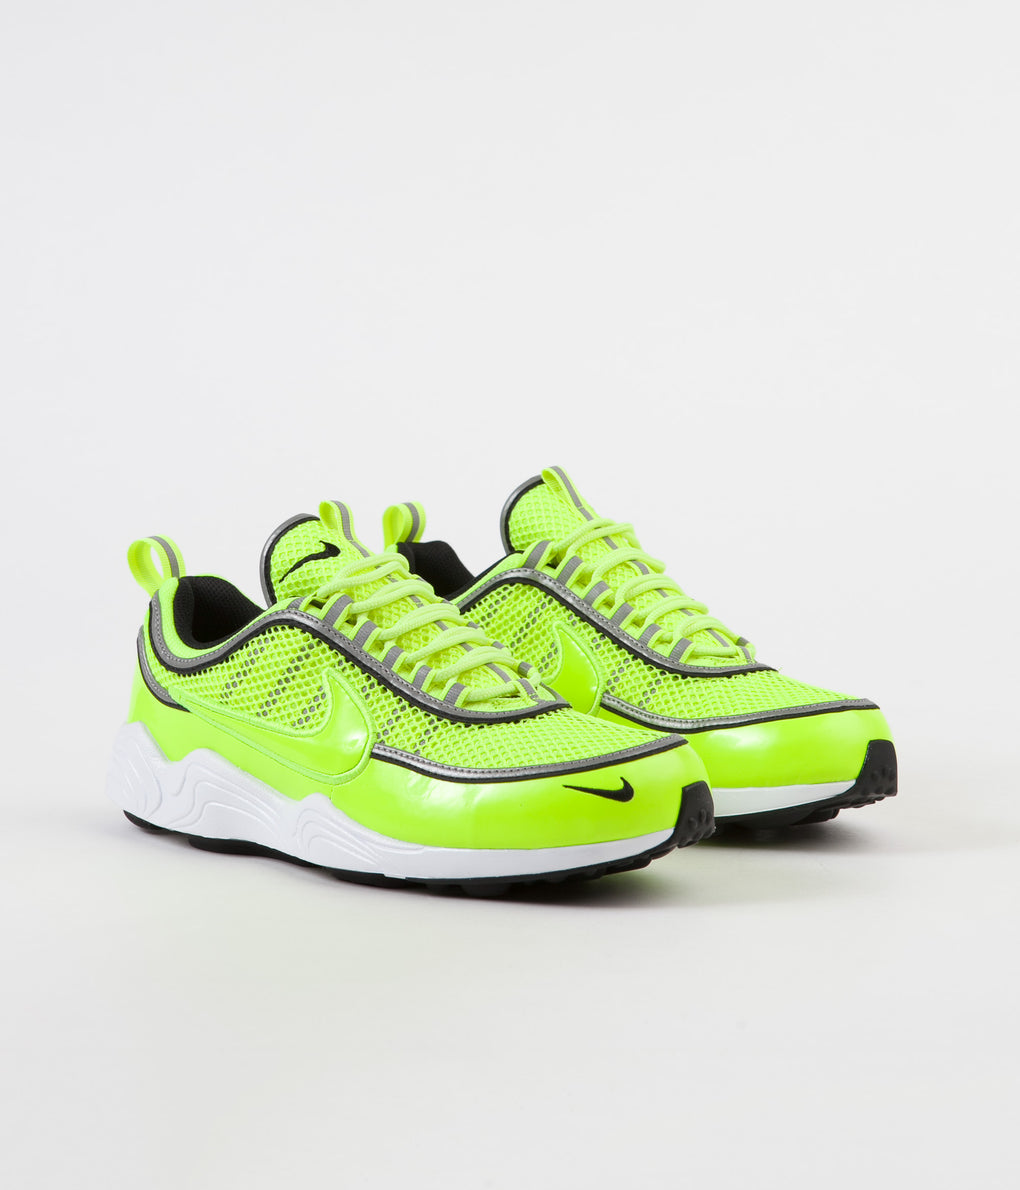 Nike Air Zoom Spiridon '16 Shoes - Volt / Volt Tint - White - Black